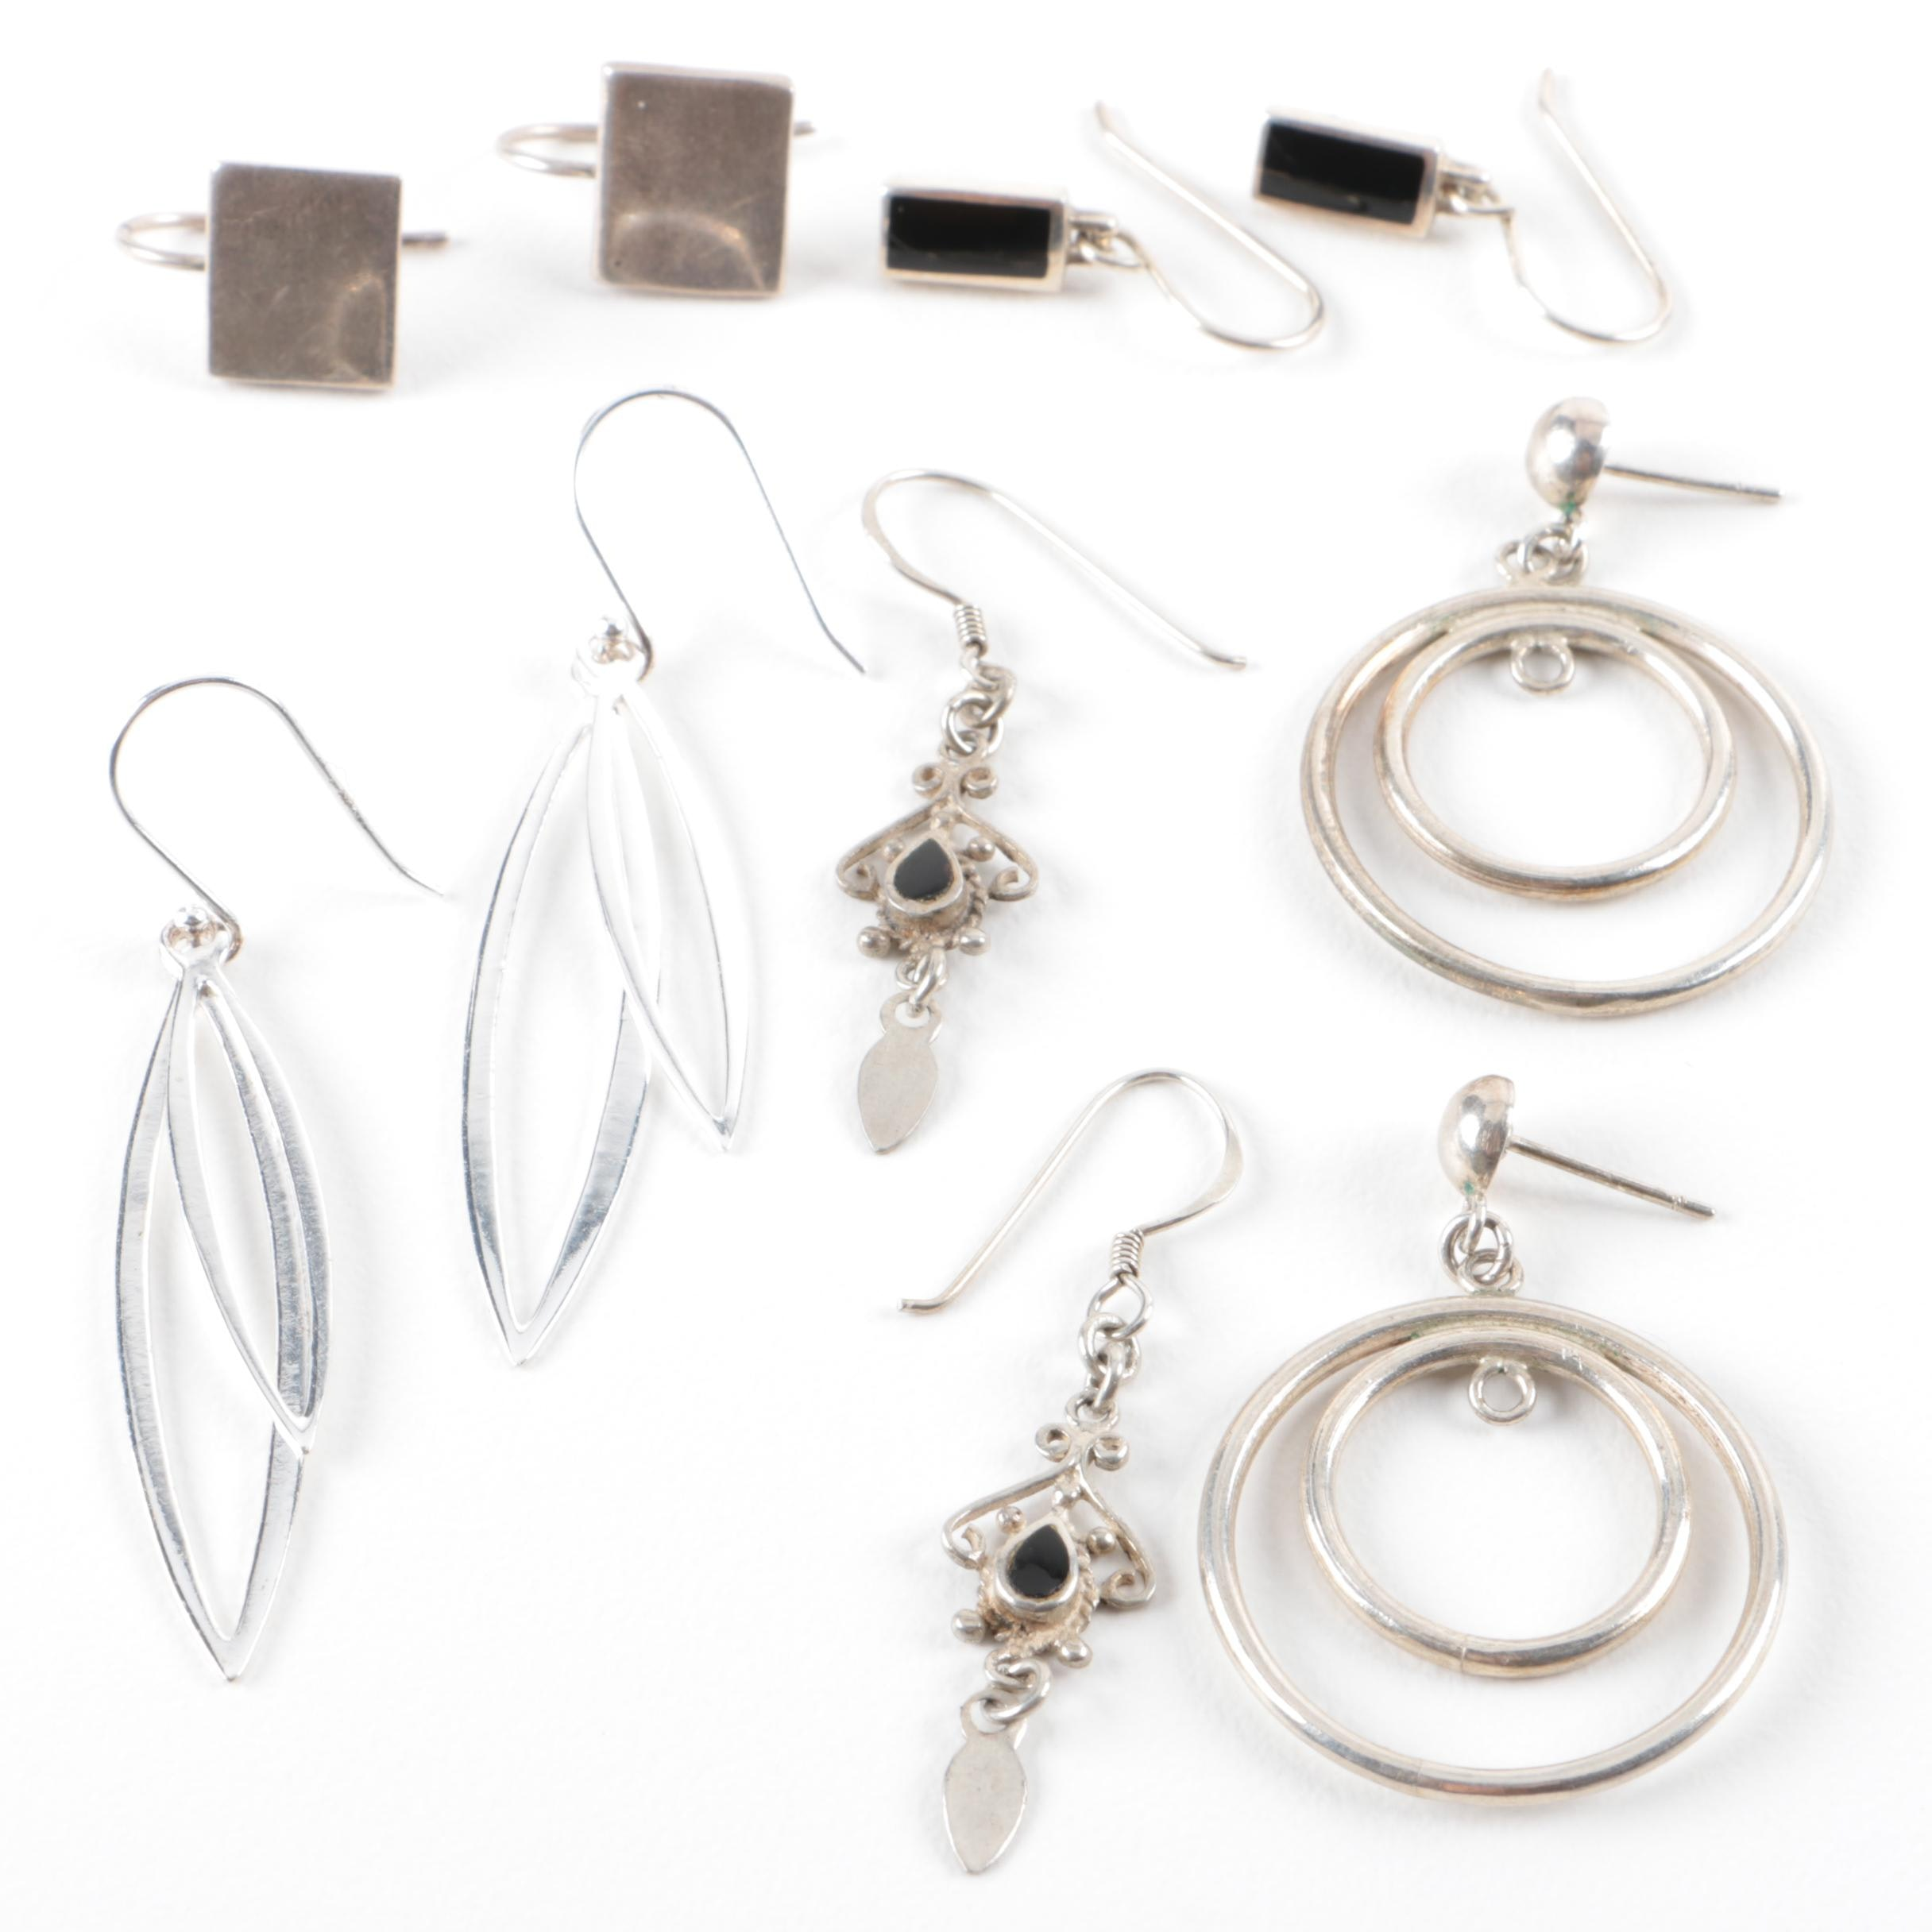 Grouping of Sterling Silver Earrings Including Onyx